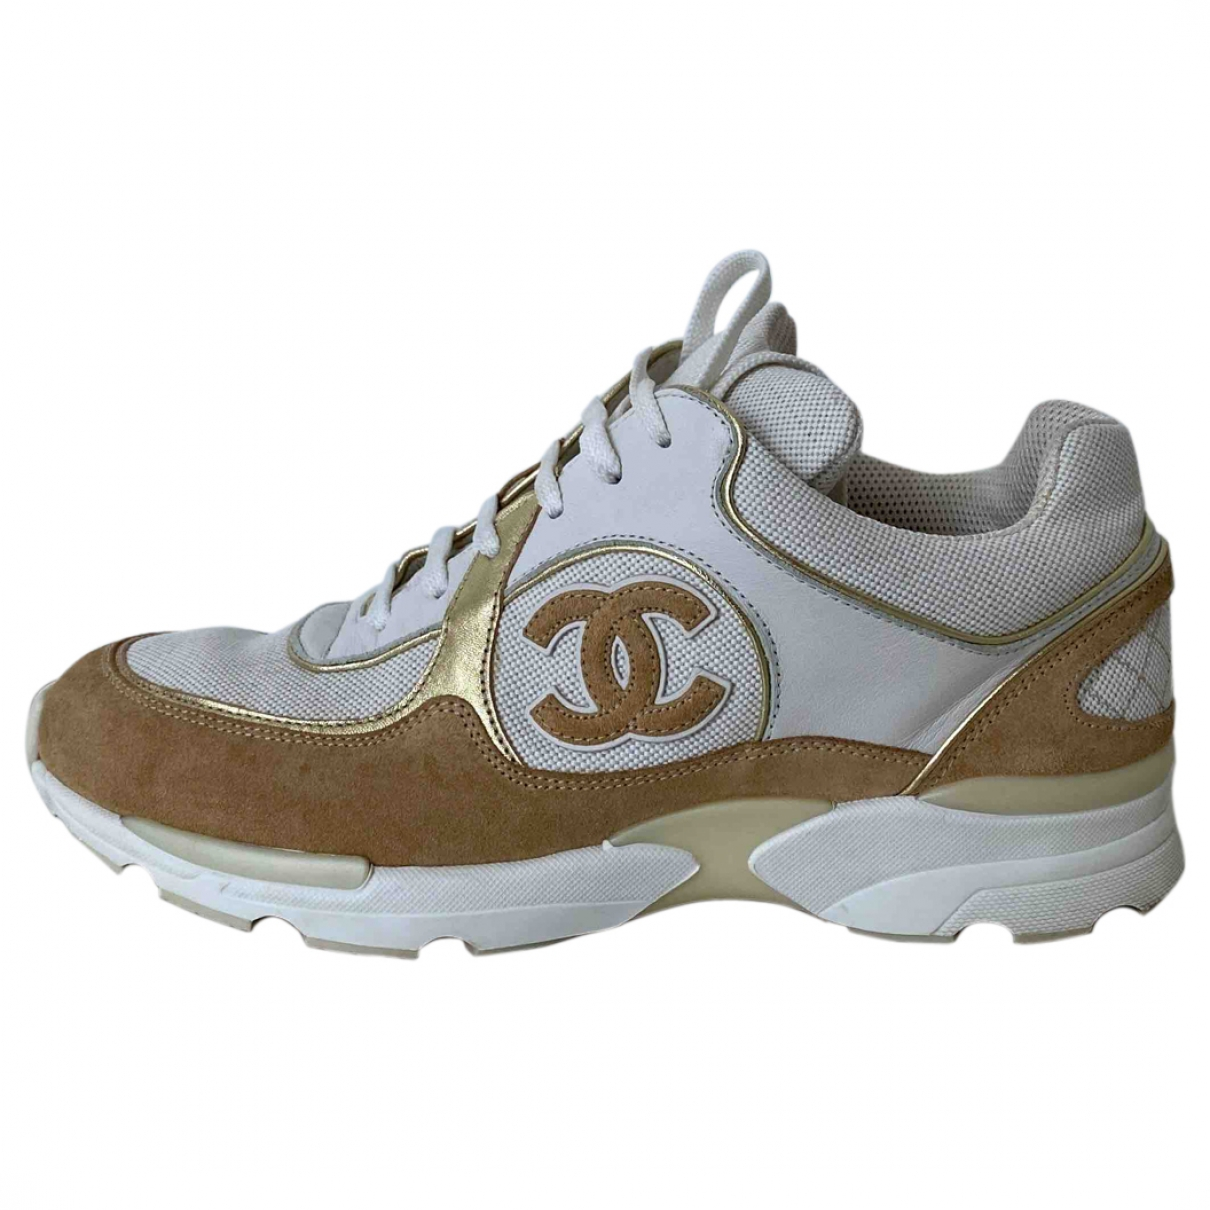 Chanel \N Multicolour Leather Trainers for Women 38 EU